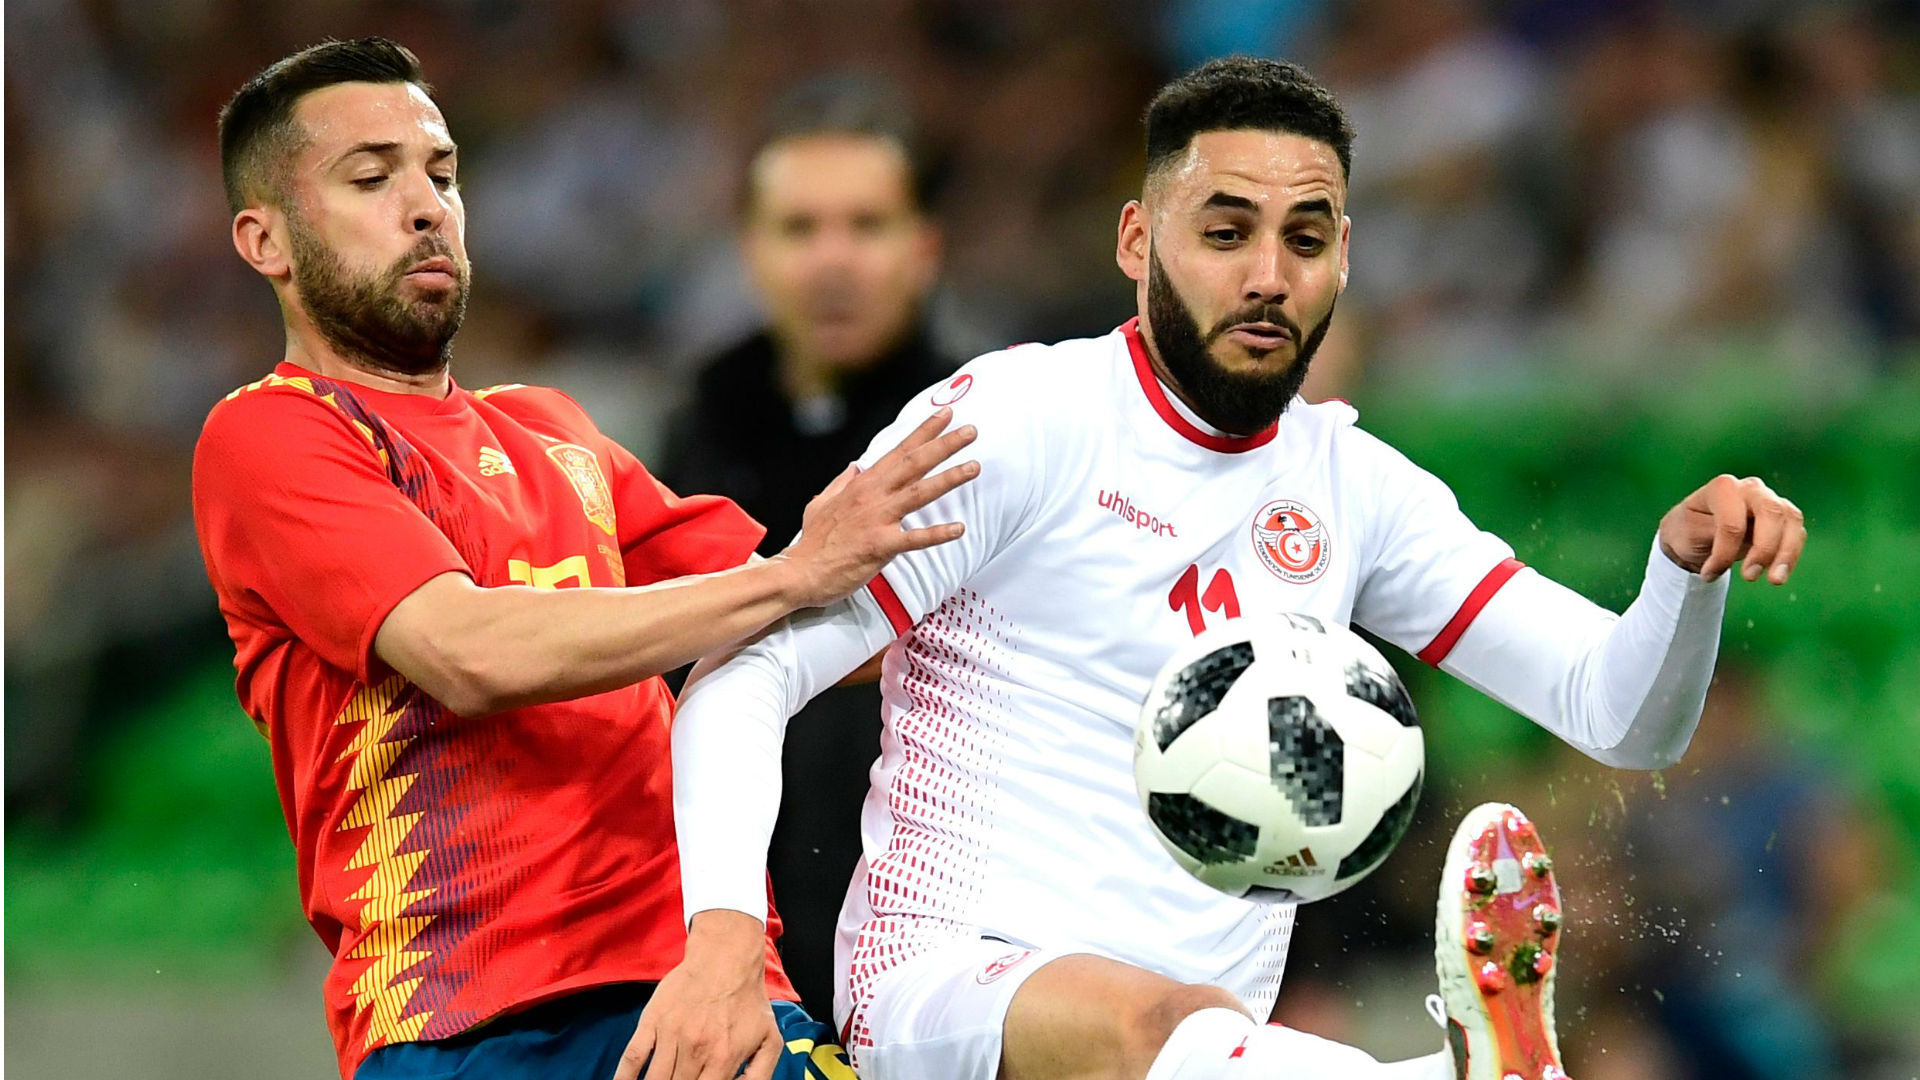 Jordi Alba Dylan Bronn Tunisia Spain international friendly 2018